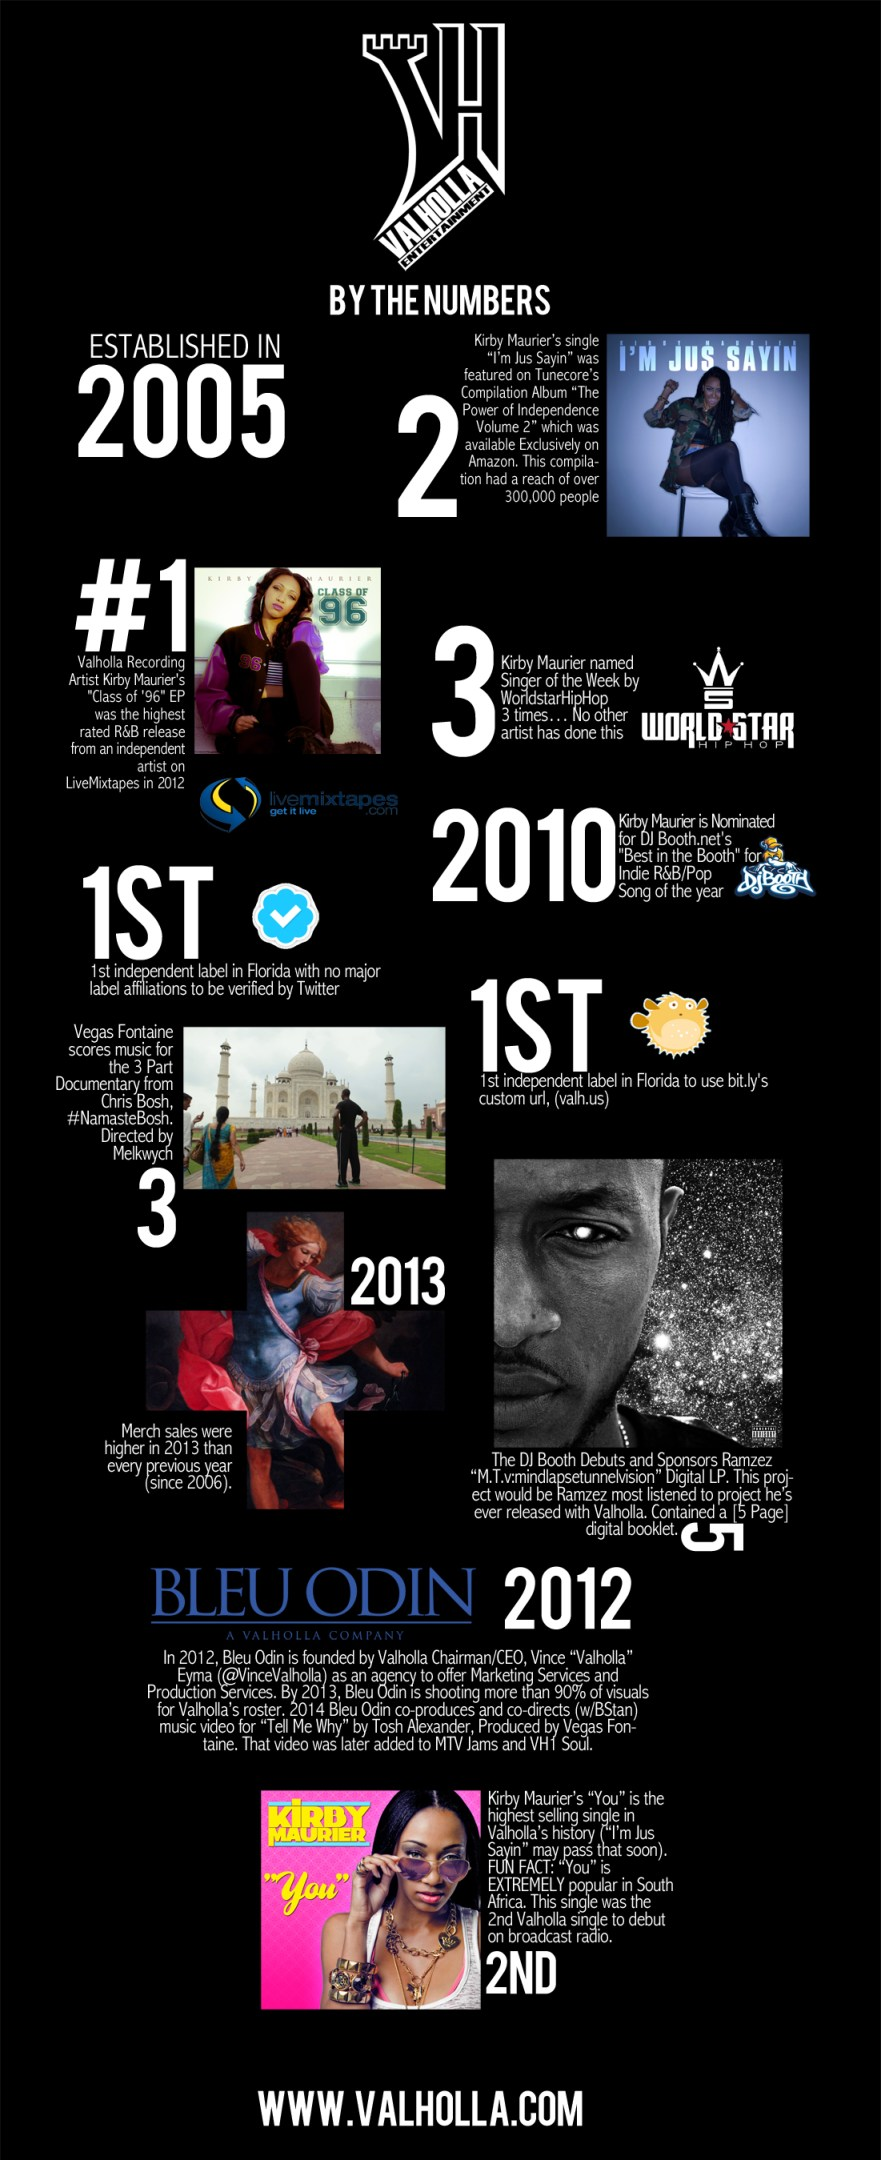 Valholla-2014-Infographic-by-the-numbers-web